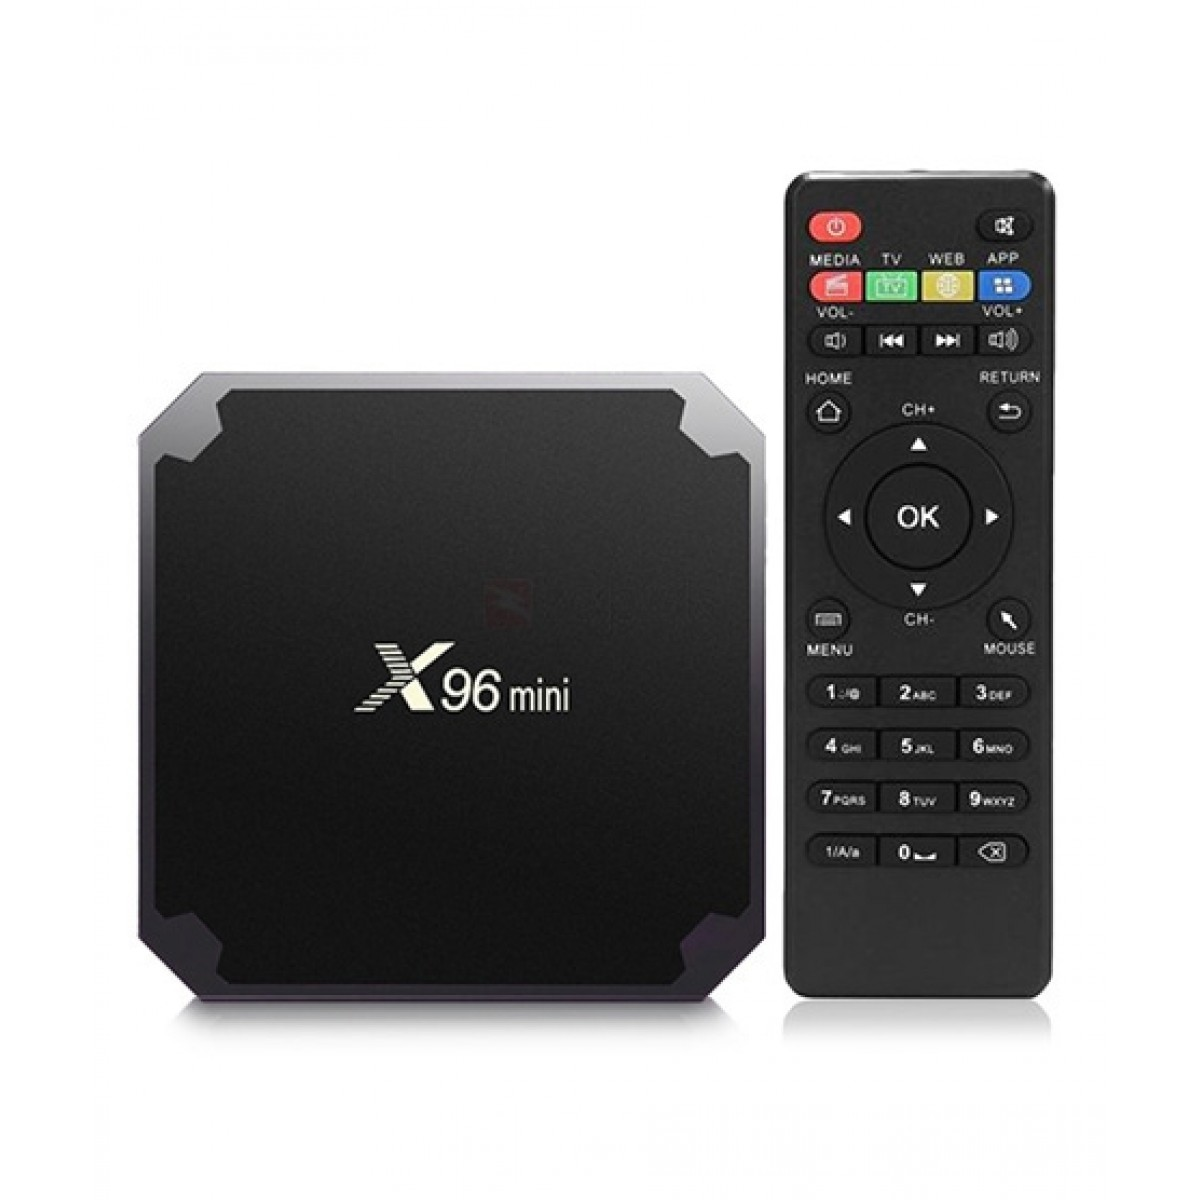 c8c3b668642 Computron X96 Mini 4K Andriod TV Box Price in Pakistan